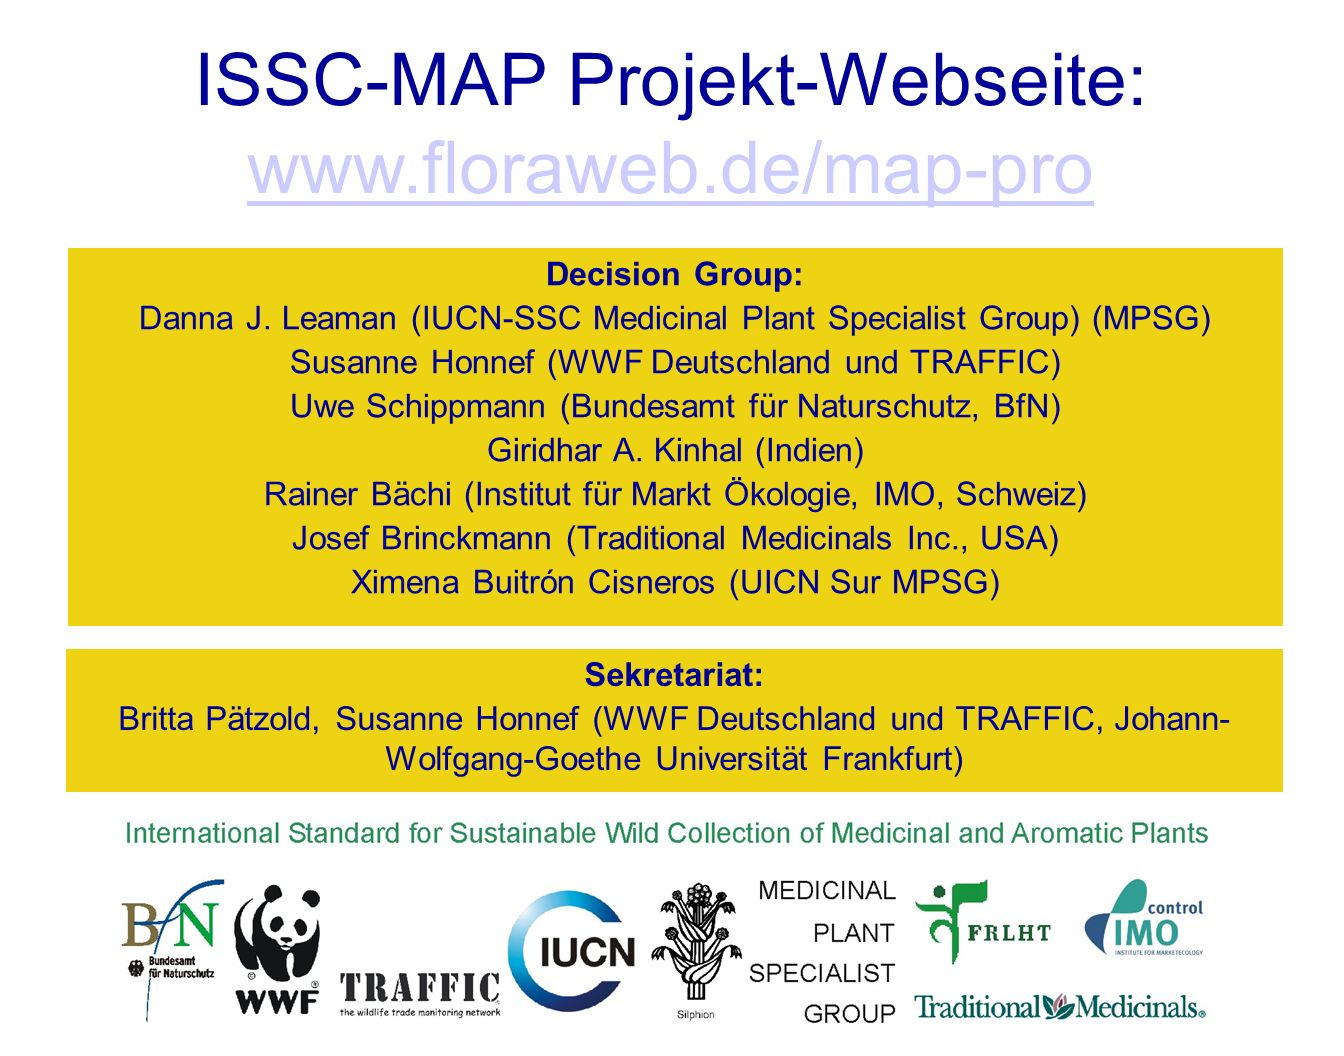 ISSC-MAP Projekt-Webseite: www.floraweb.de/map-pro